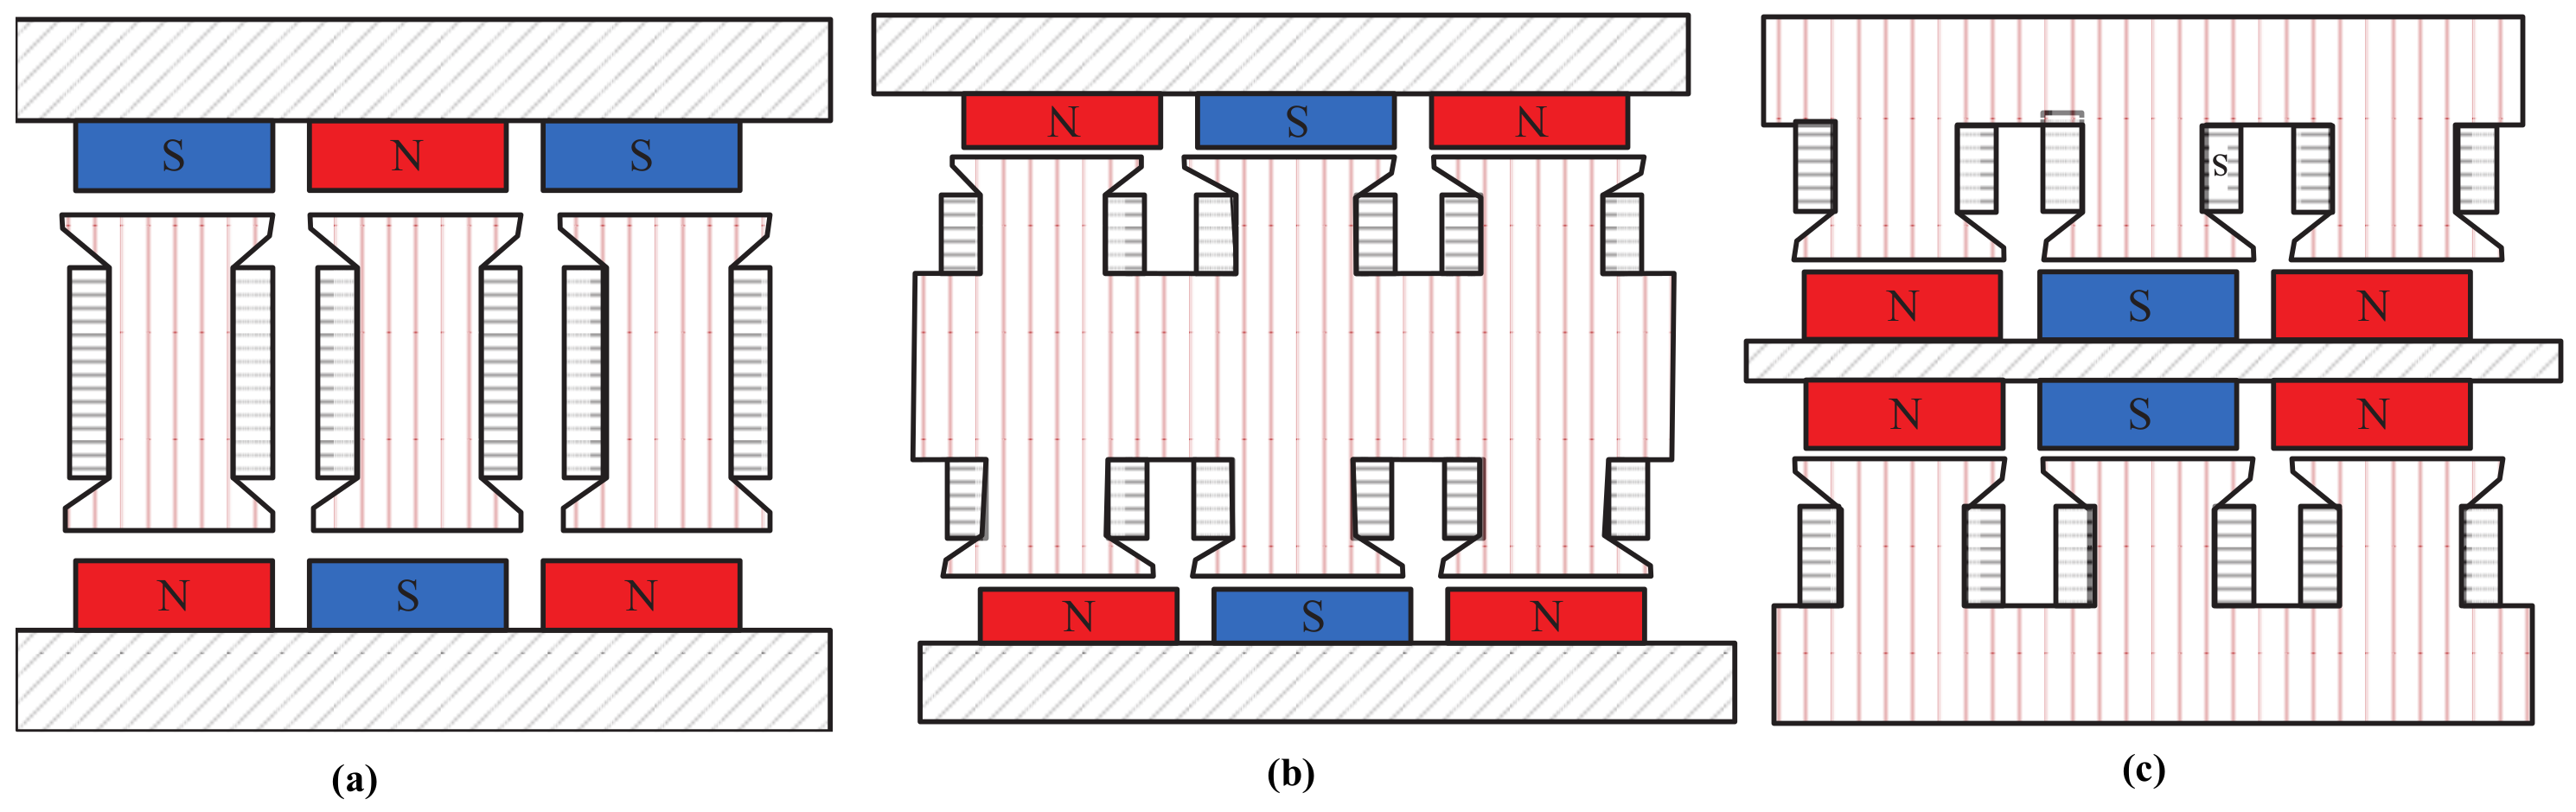 Energies | Free Full-Text | A 3D Dynamic Lumped Parameter Thermal